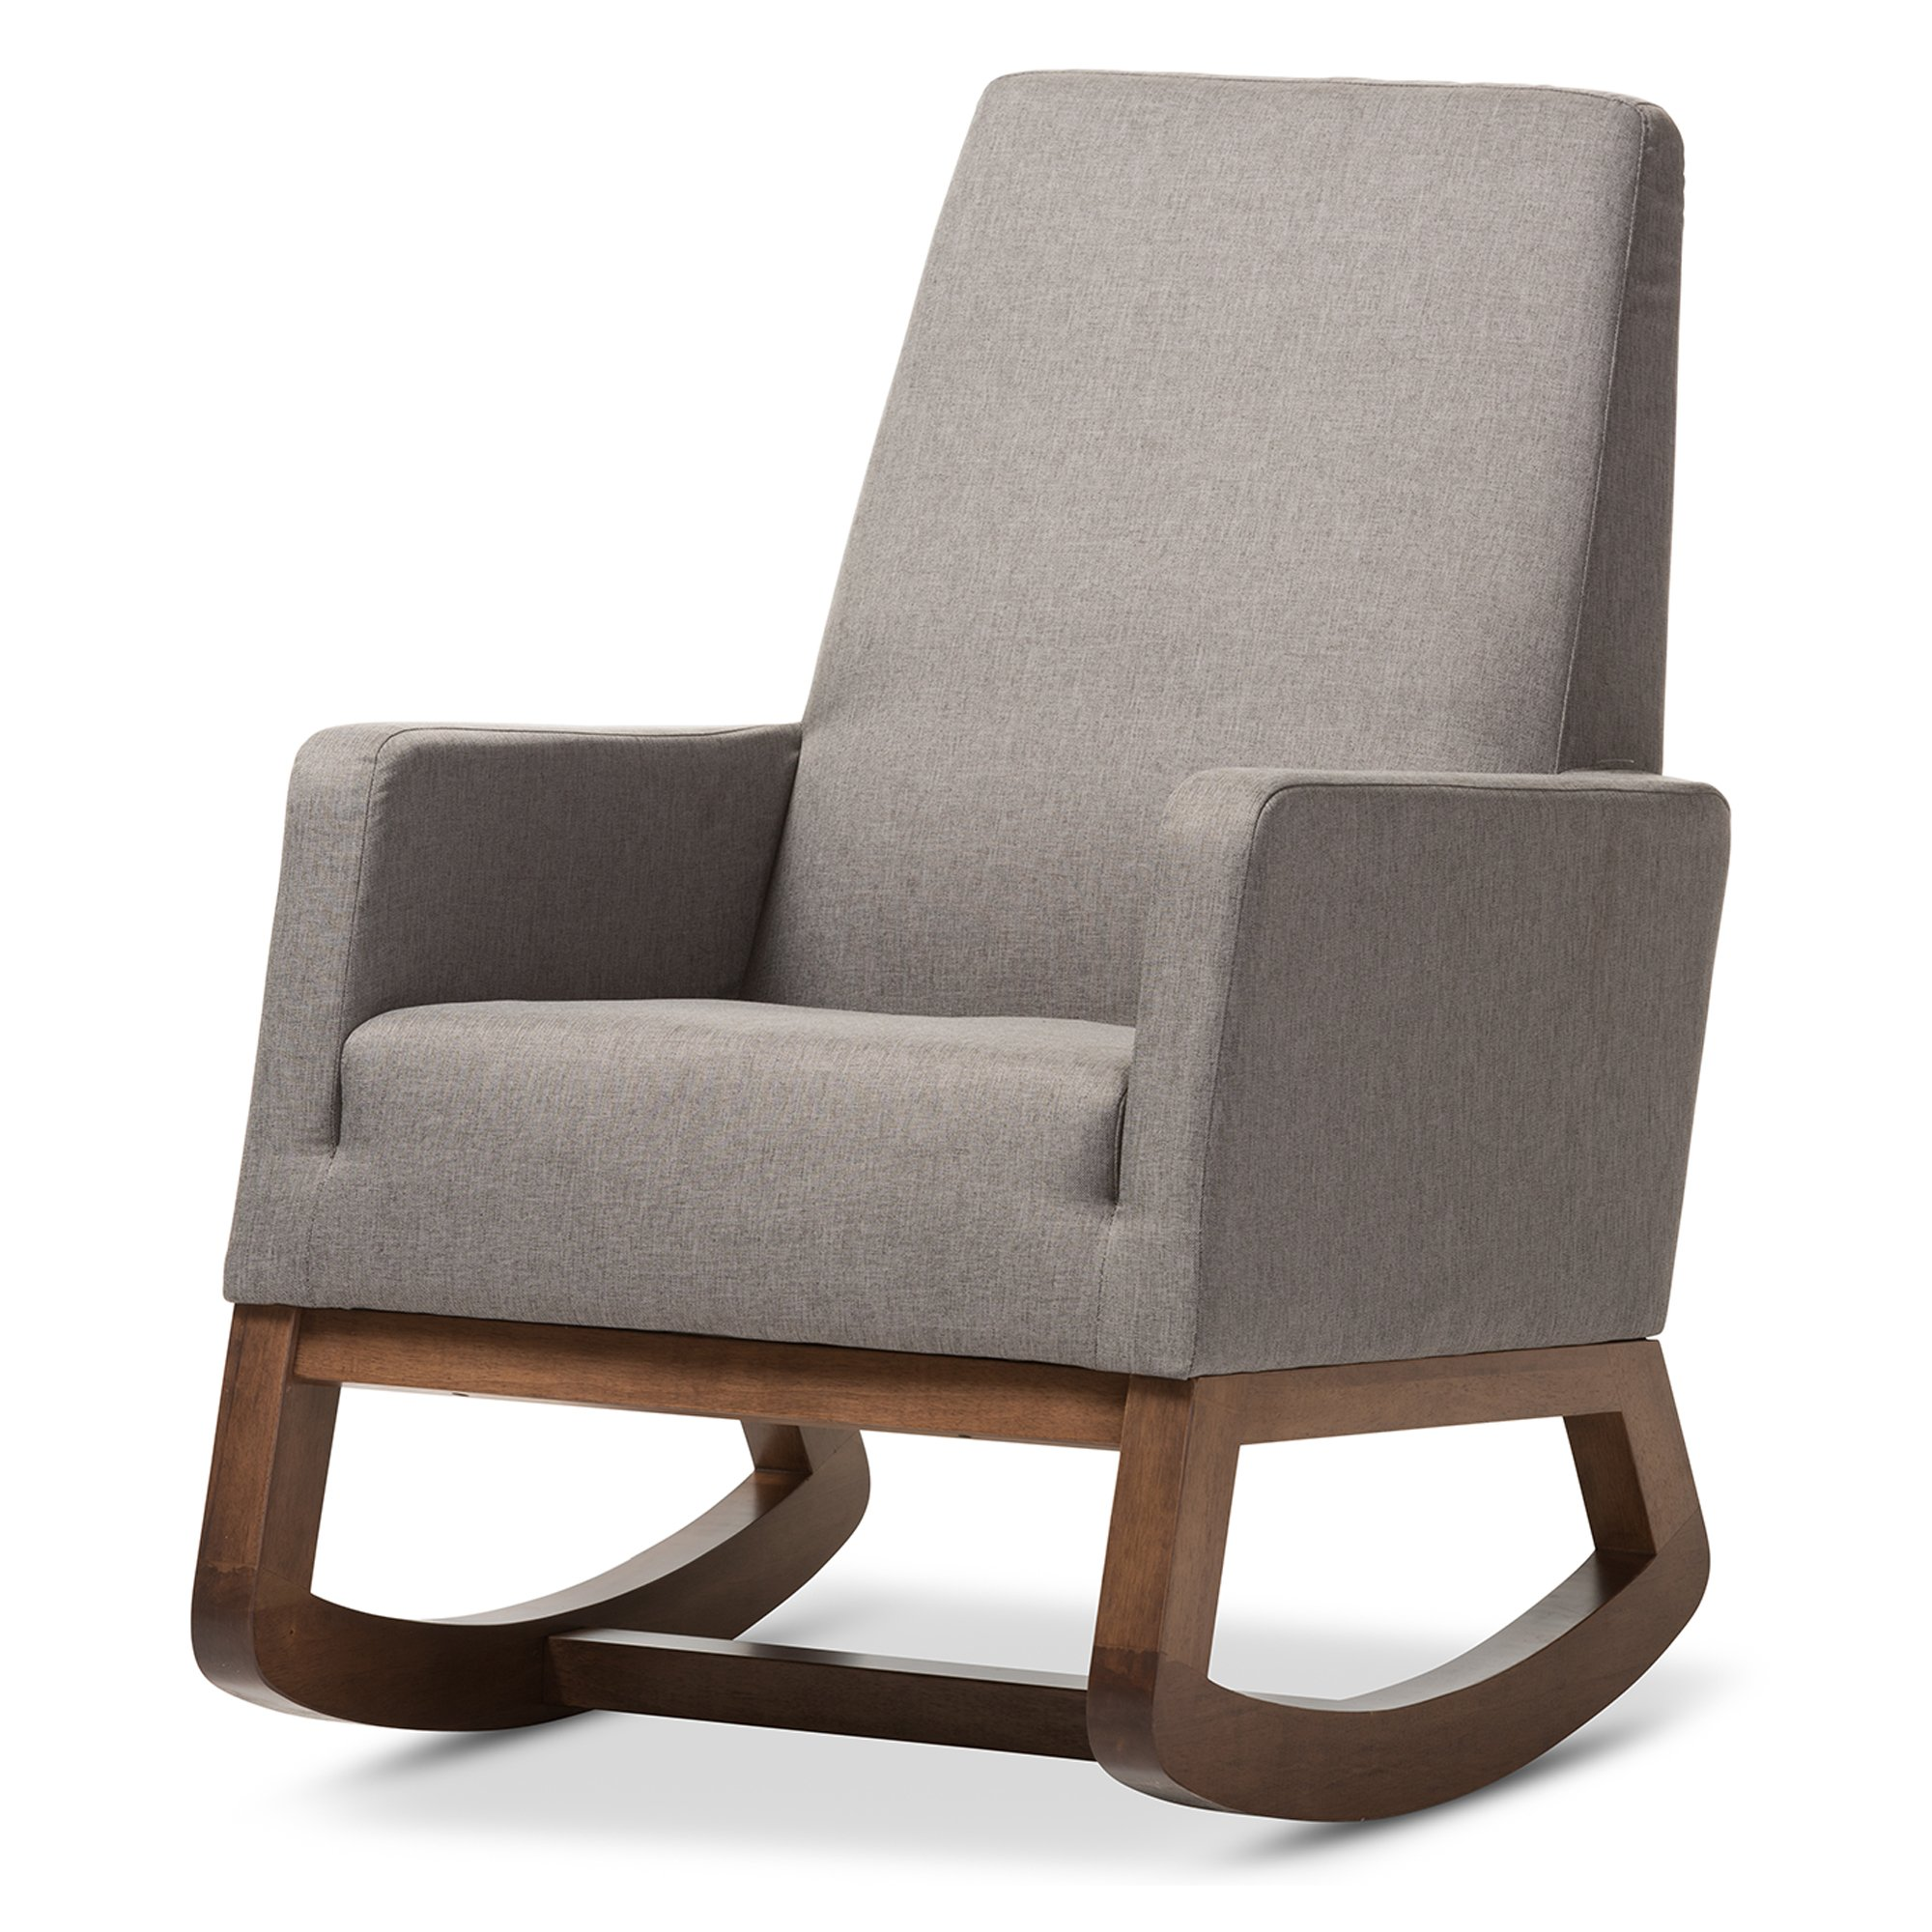 Baxton Studio Yashiya Mid-Century Retro Modern Fabric Upholstered Rocking Chair, Grey